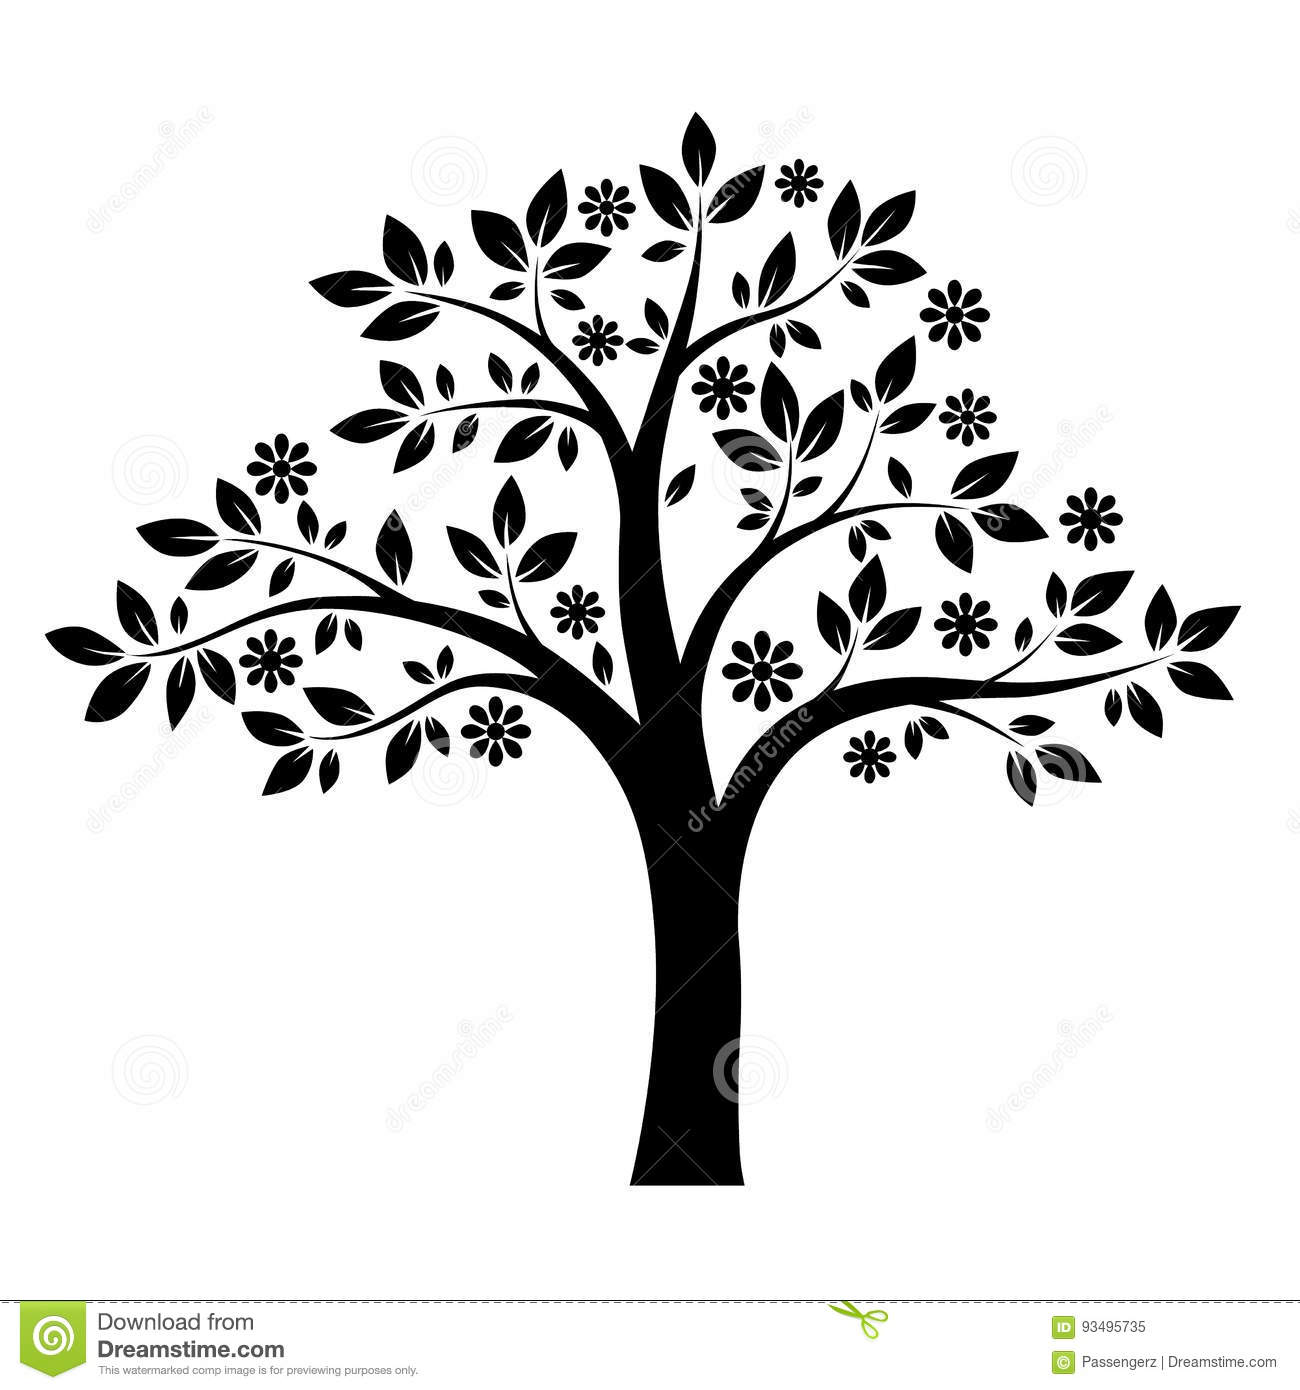 u00c1rvore preto e branco vetor ilustra u00e7 u00e3o do vetor imagem free clipart images black and white tree free tree clip art black and white tree